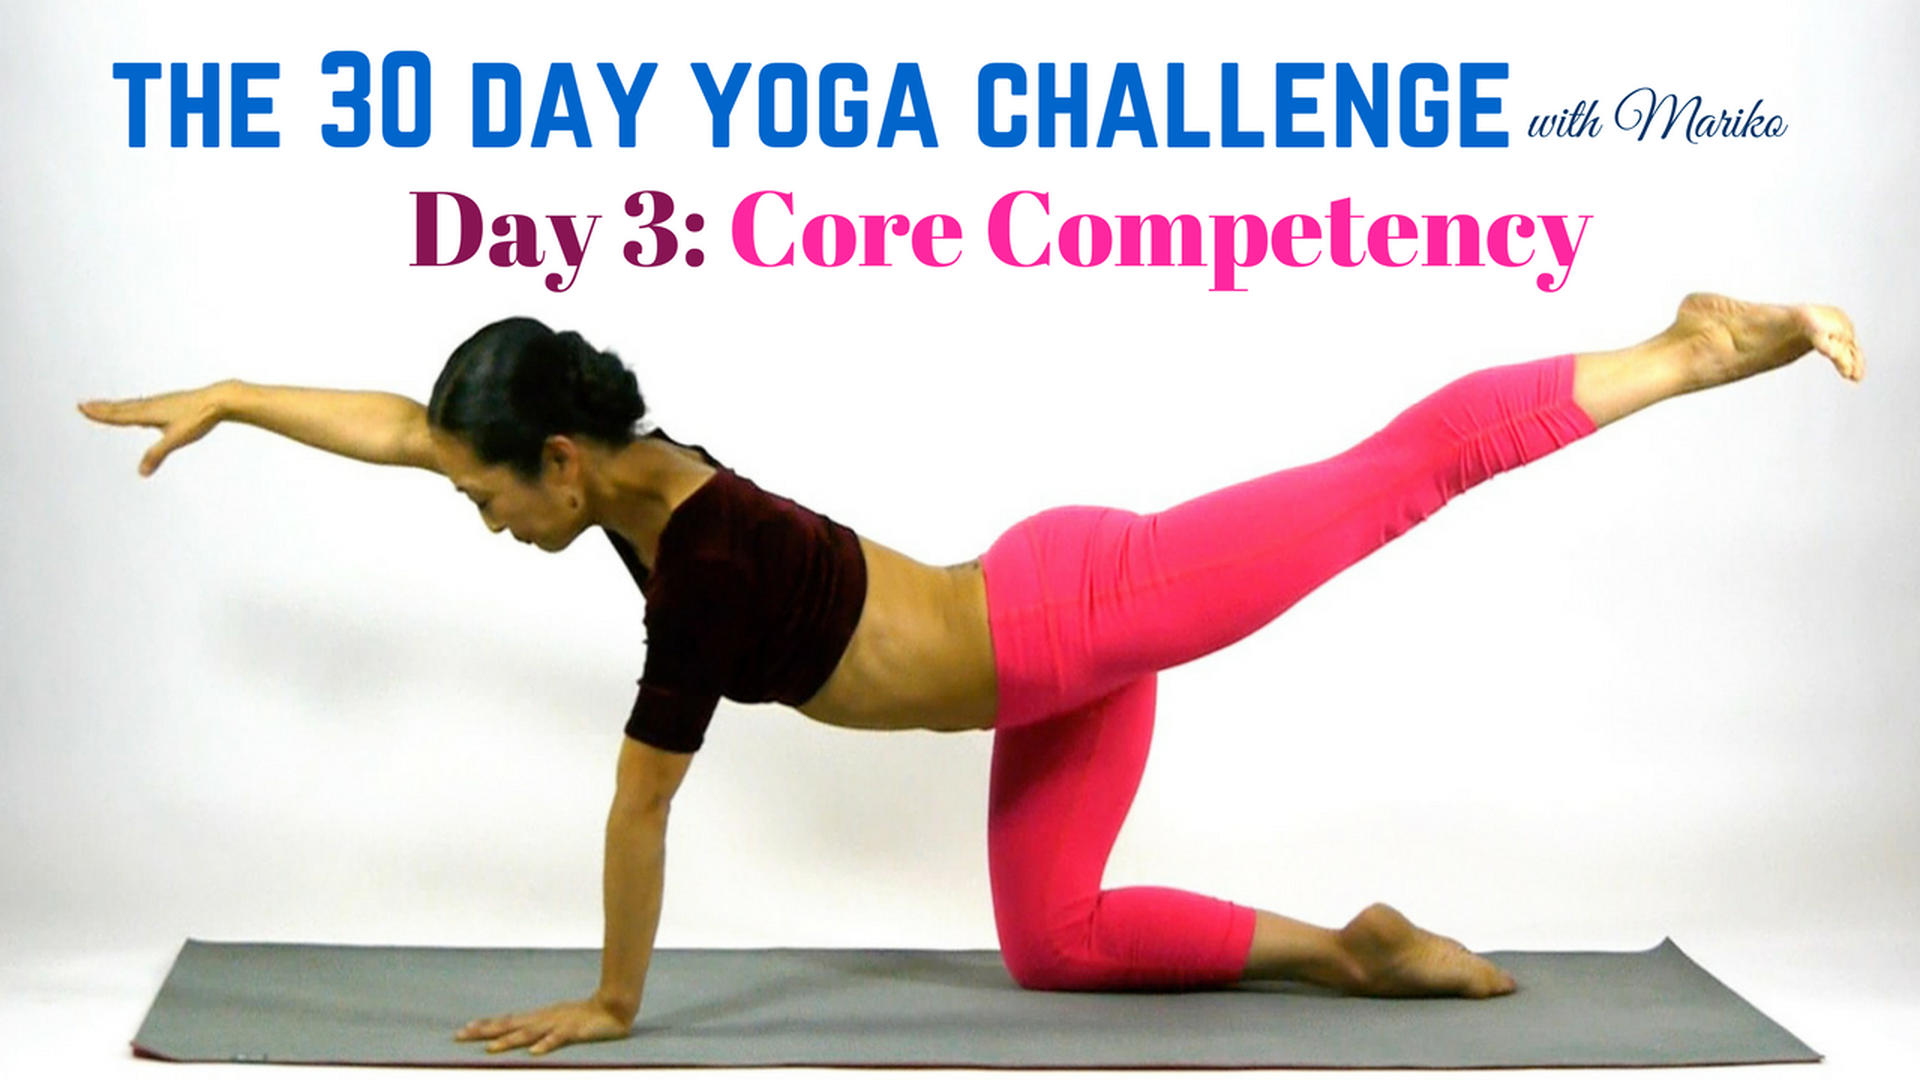 Day 3 of the 30 Day Visionary Yoga Challenge: Core Competency